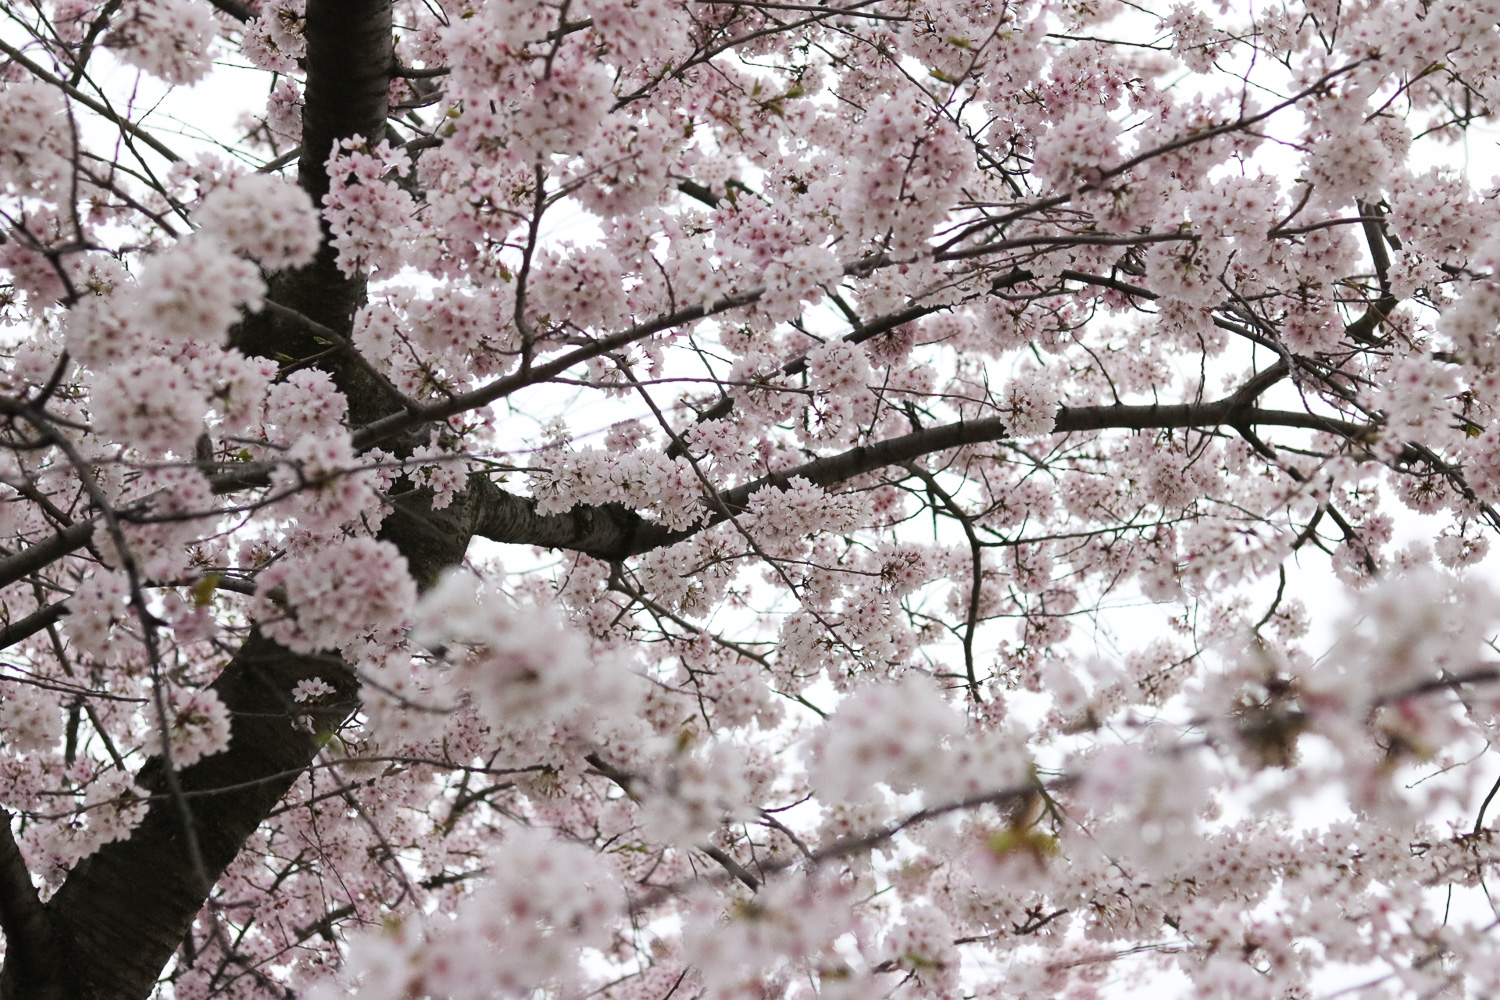 Week In Review - Cherry Blossoms - Washington, D.C. @cobaltchronicle